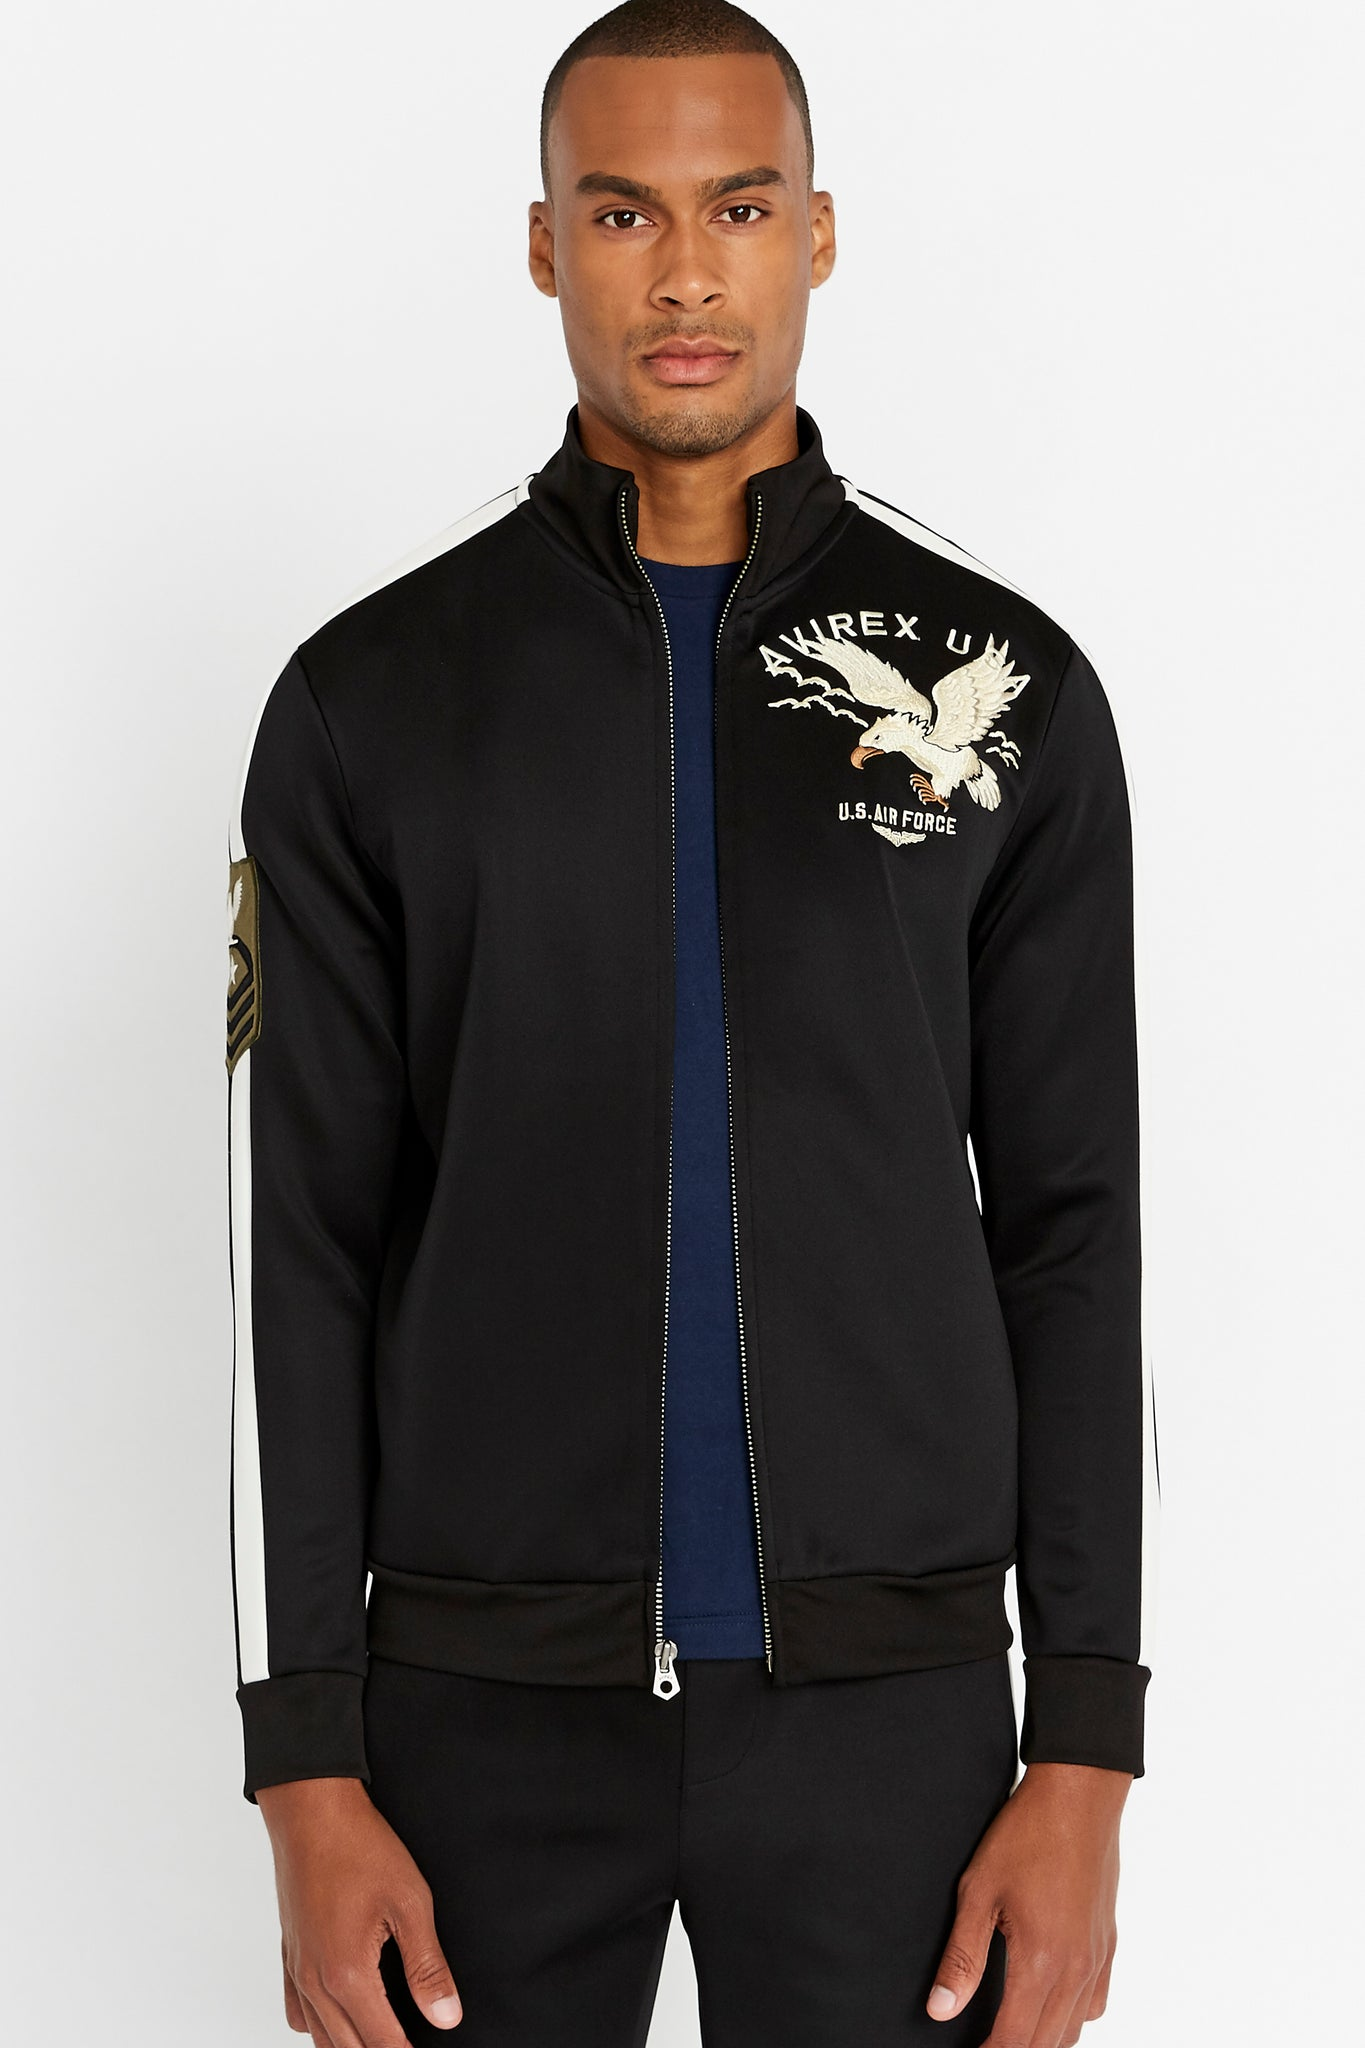 Front view of men wearing an open black jet track jacket with eagle embroidery on the chest